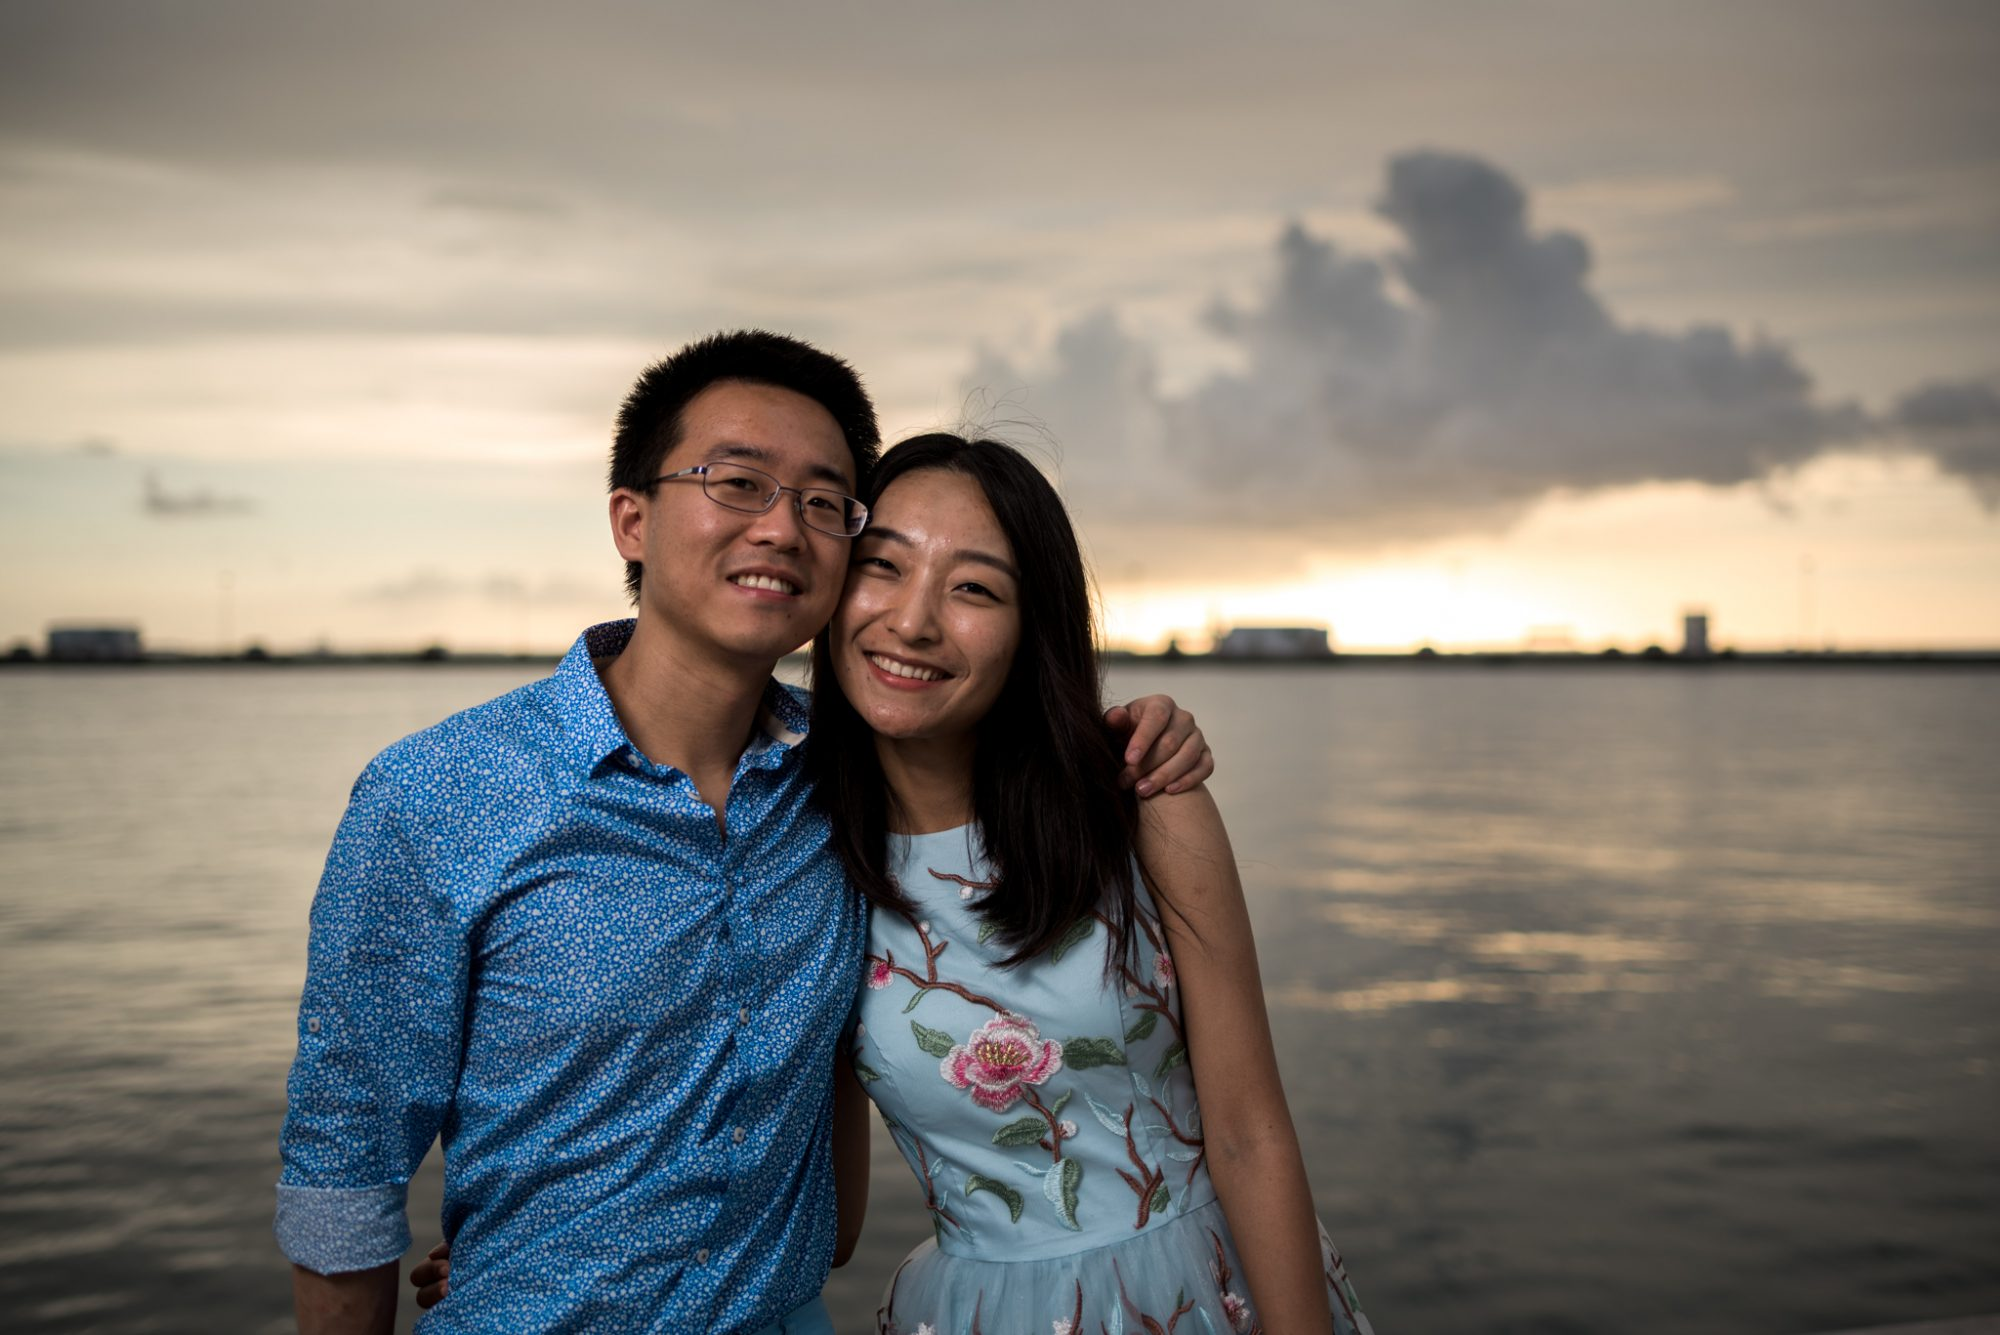 FBF1497 - Xiao & Ying | Key West, FL | Engagement Sunset Session